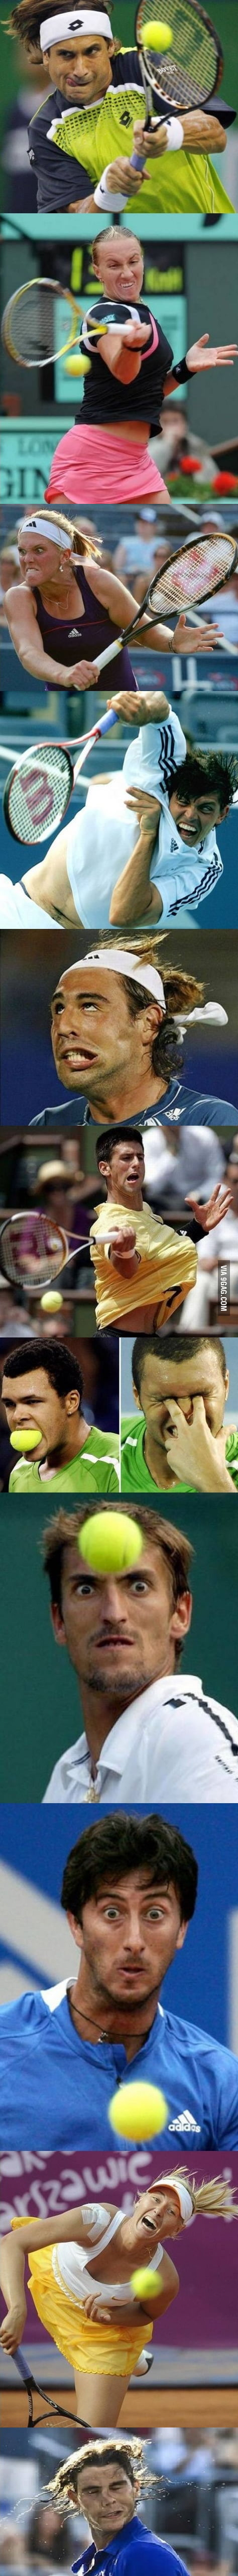 Funny Tennis Moments